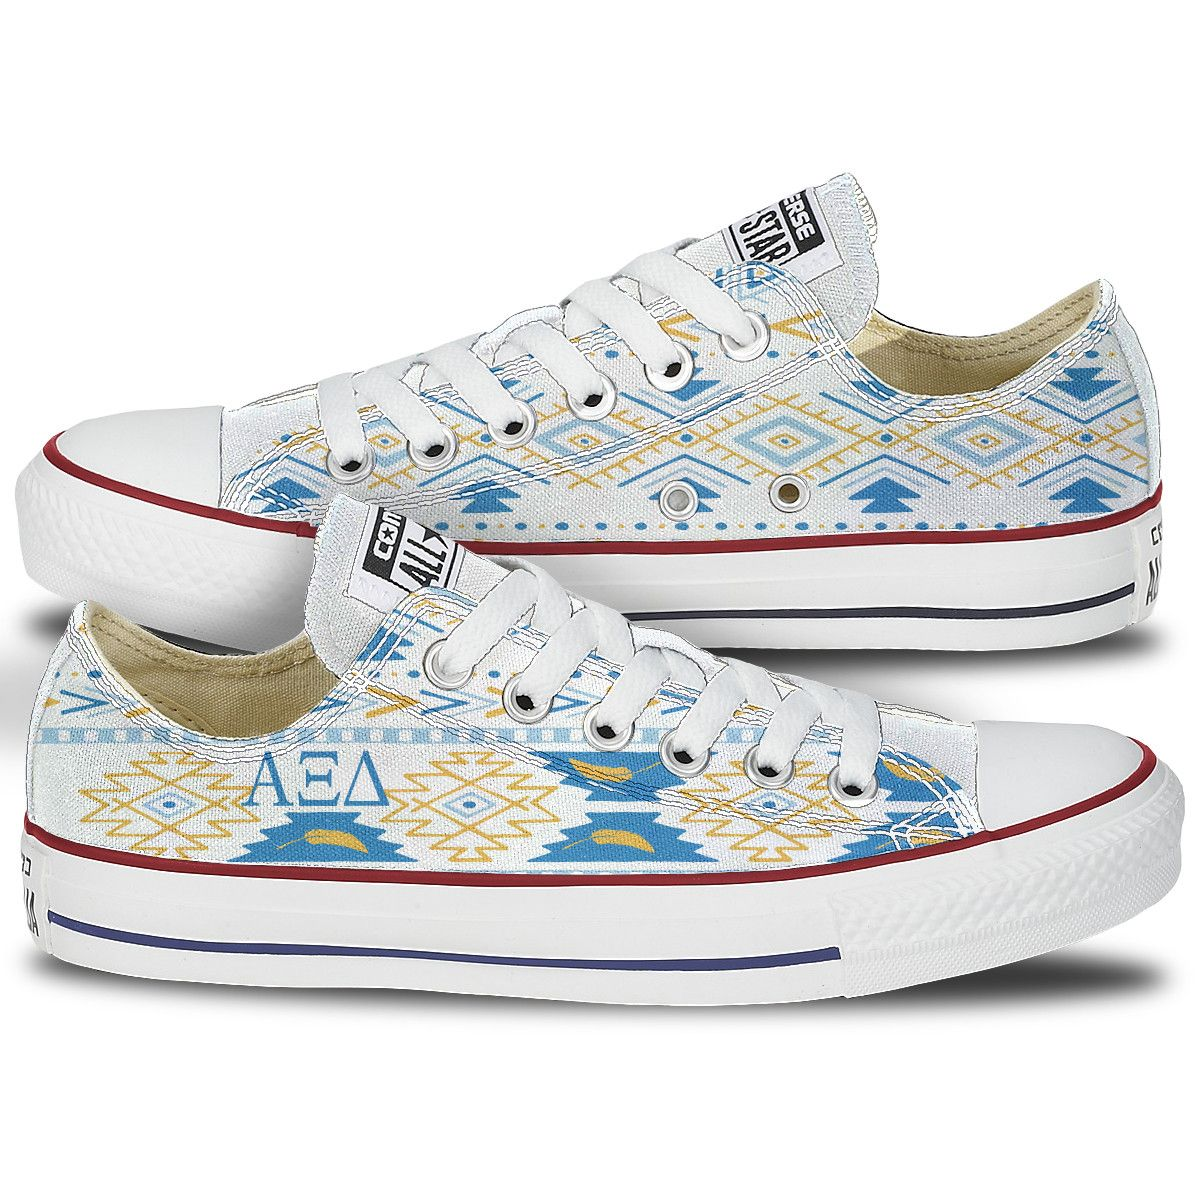 766688e6d3ef Alpha Xi Tribal Pattern Converse Low Tops - This pair of classic converse  chucks features ΑΞΔ in a complete canvas Tribal Pattern .